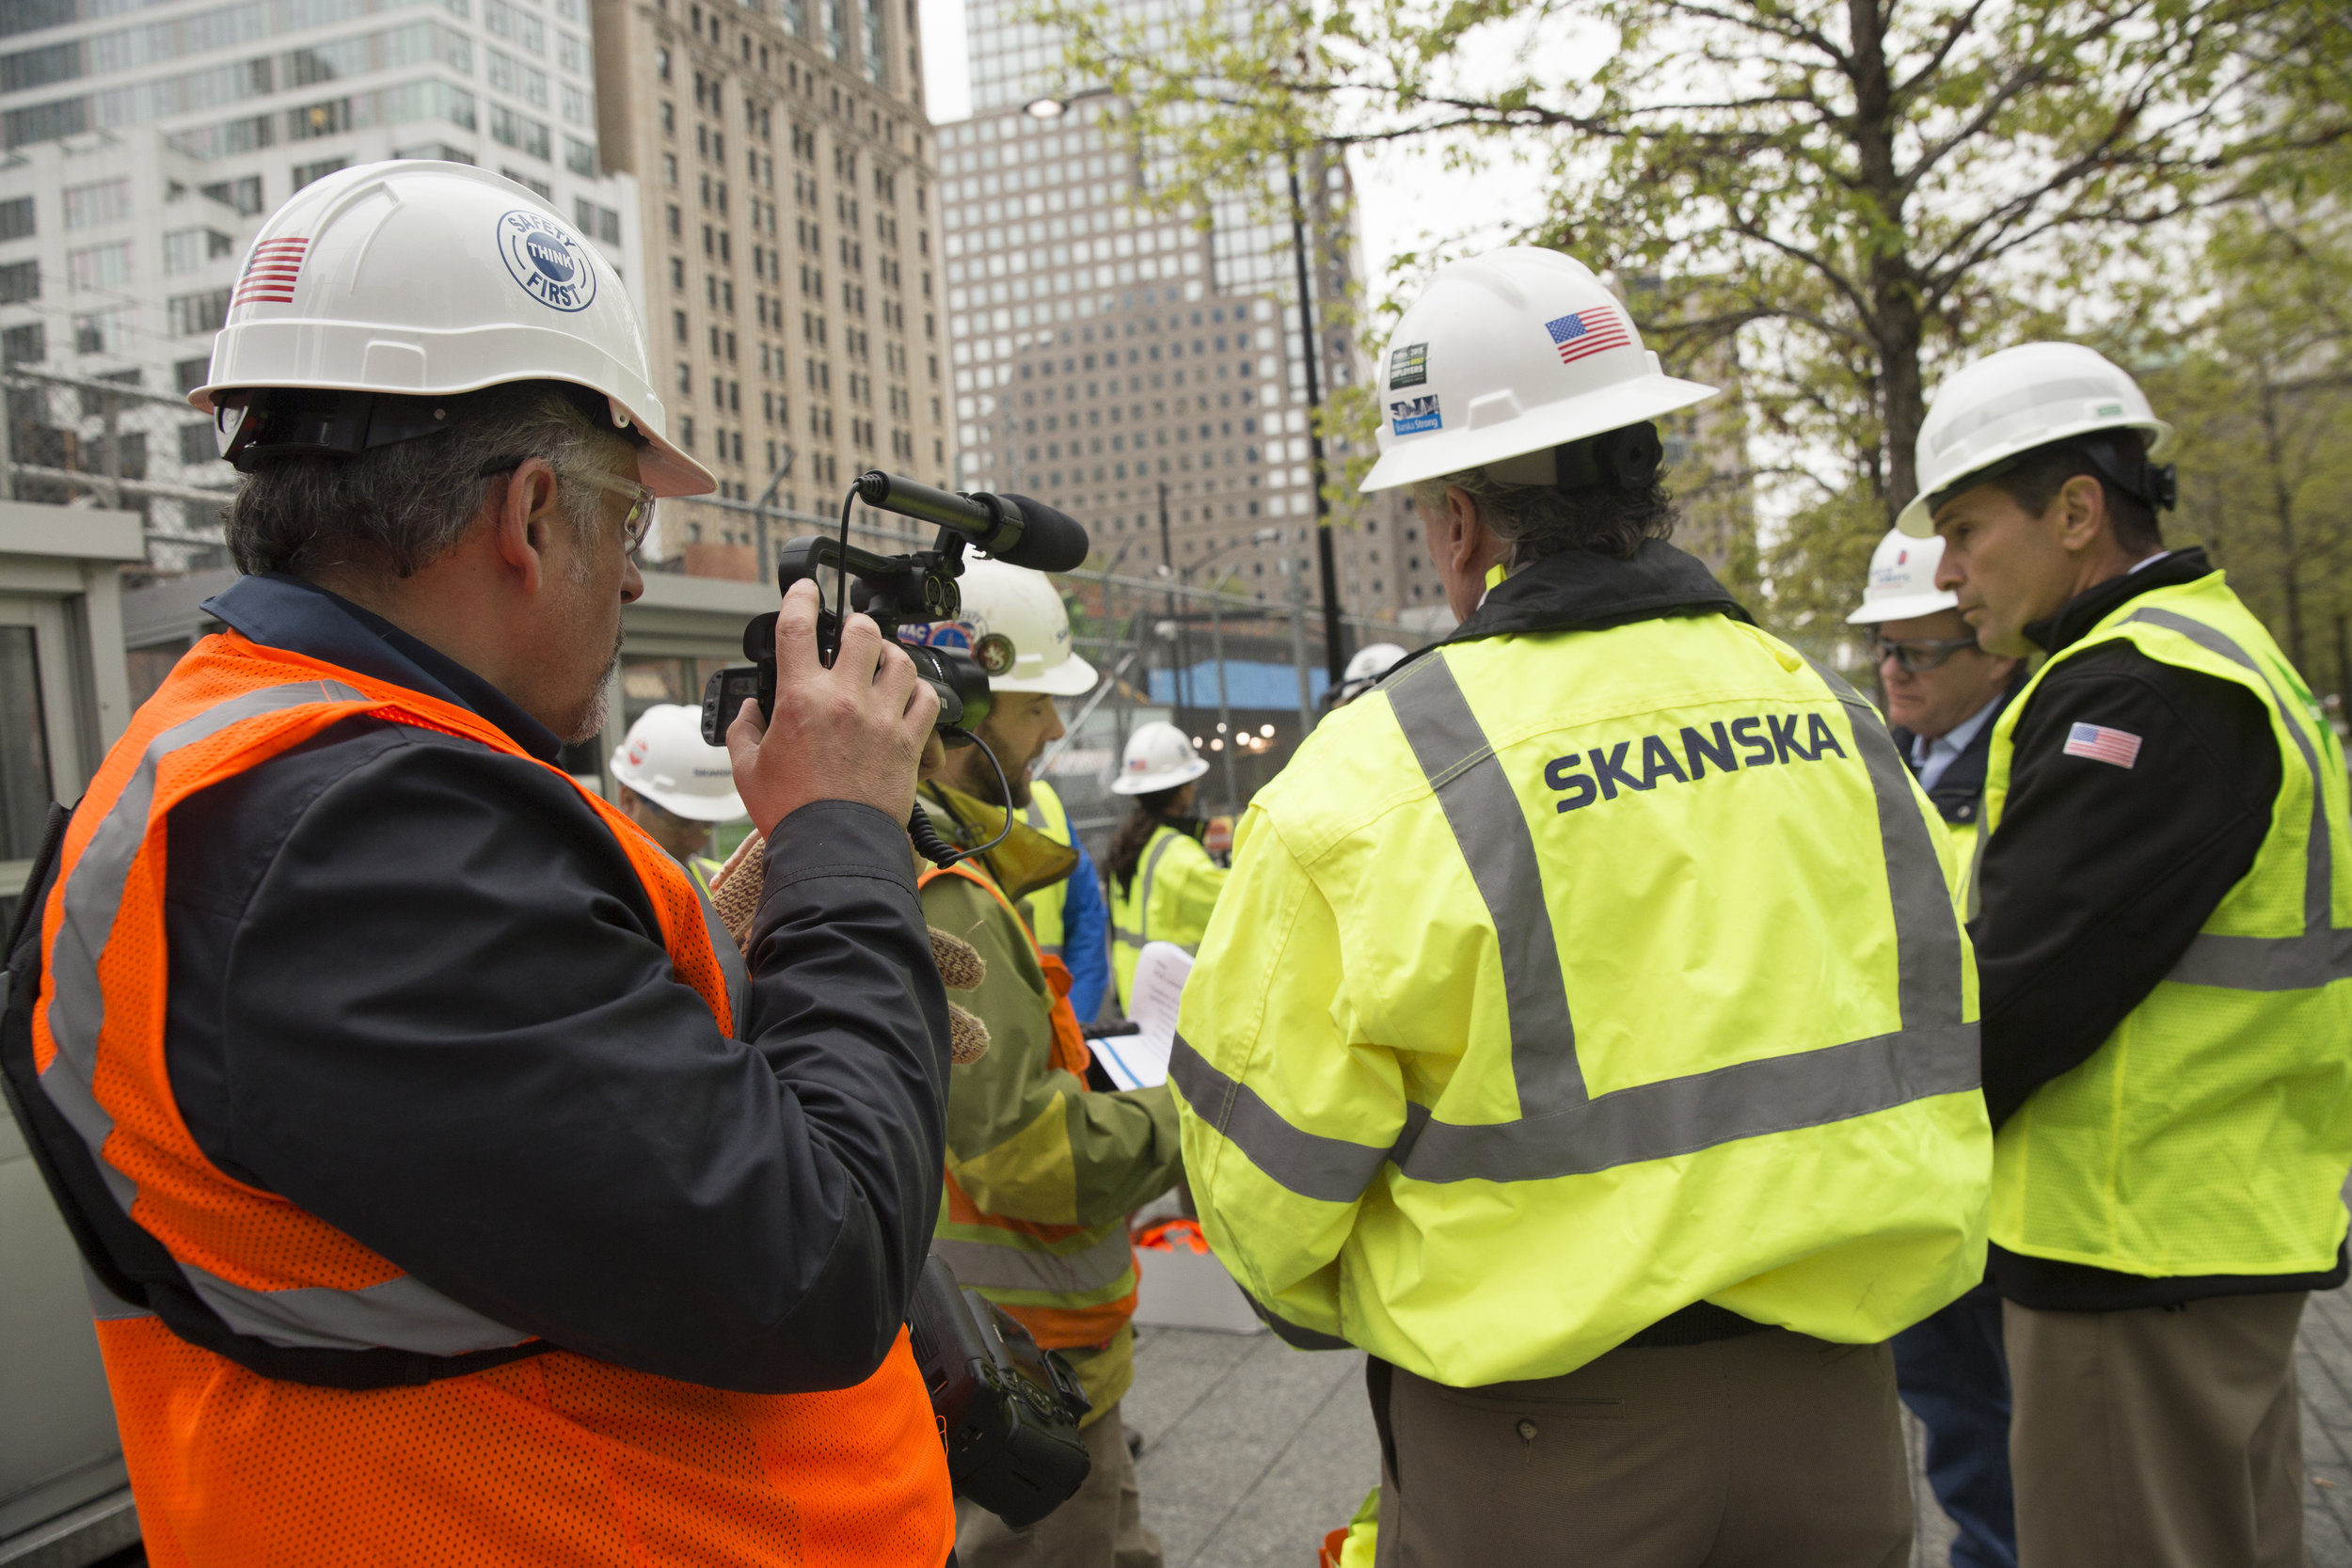 skanska film shoot at construction site Industrial photography by corporate photographer Michael Benabib.jpg